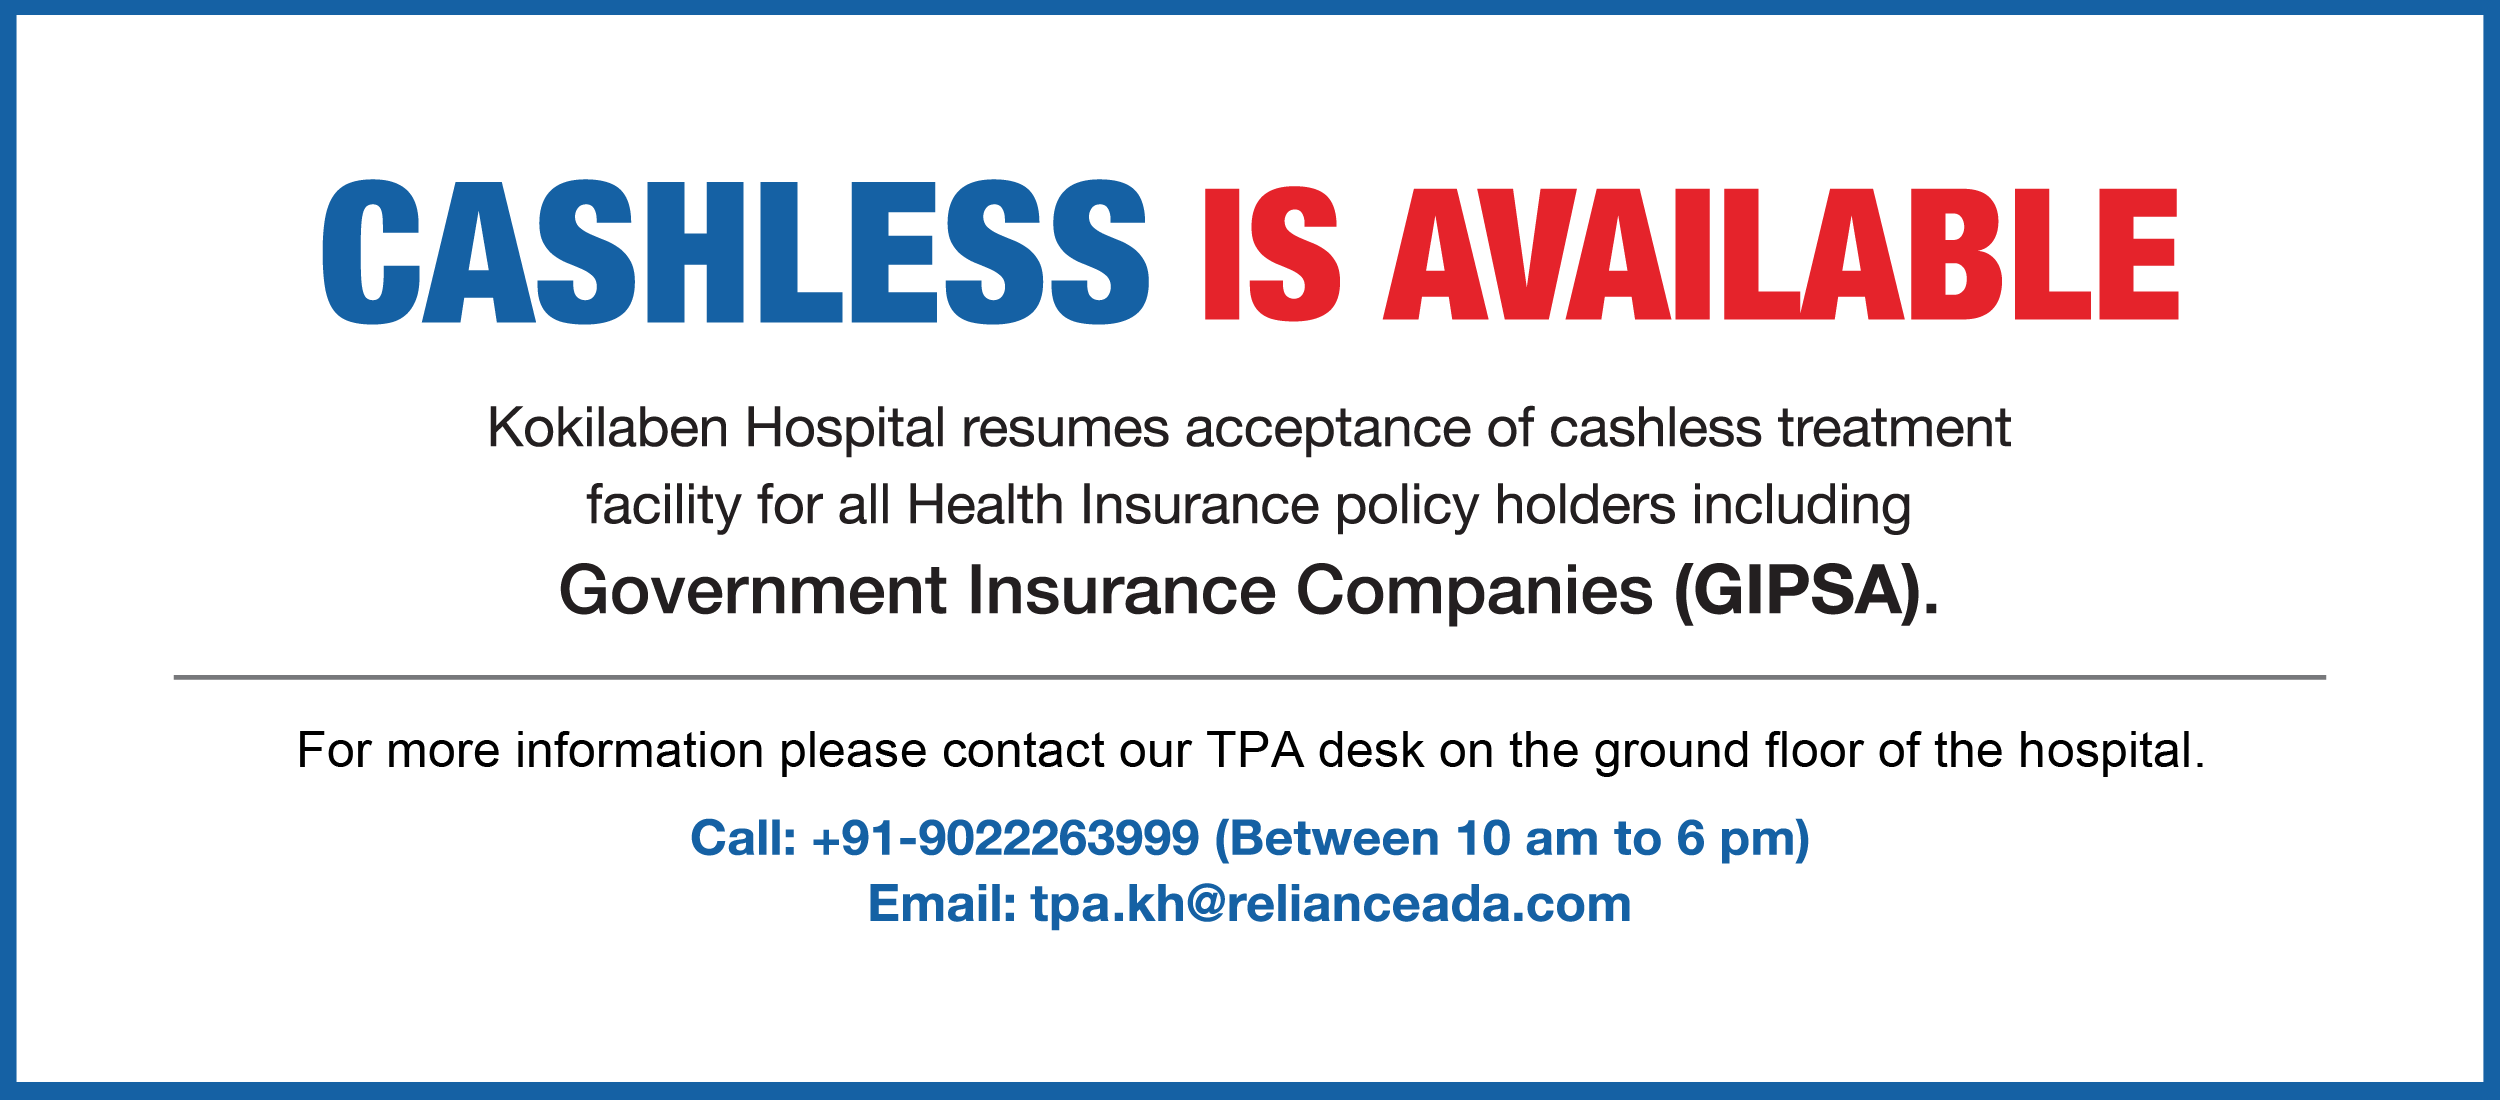 Kokilaben Dhirubhai Ambani Hospital - Cashless Treatment Facility for all Health Insurance Policy